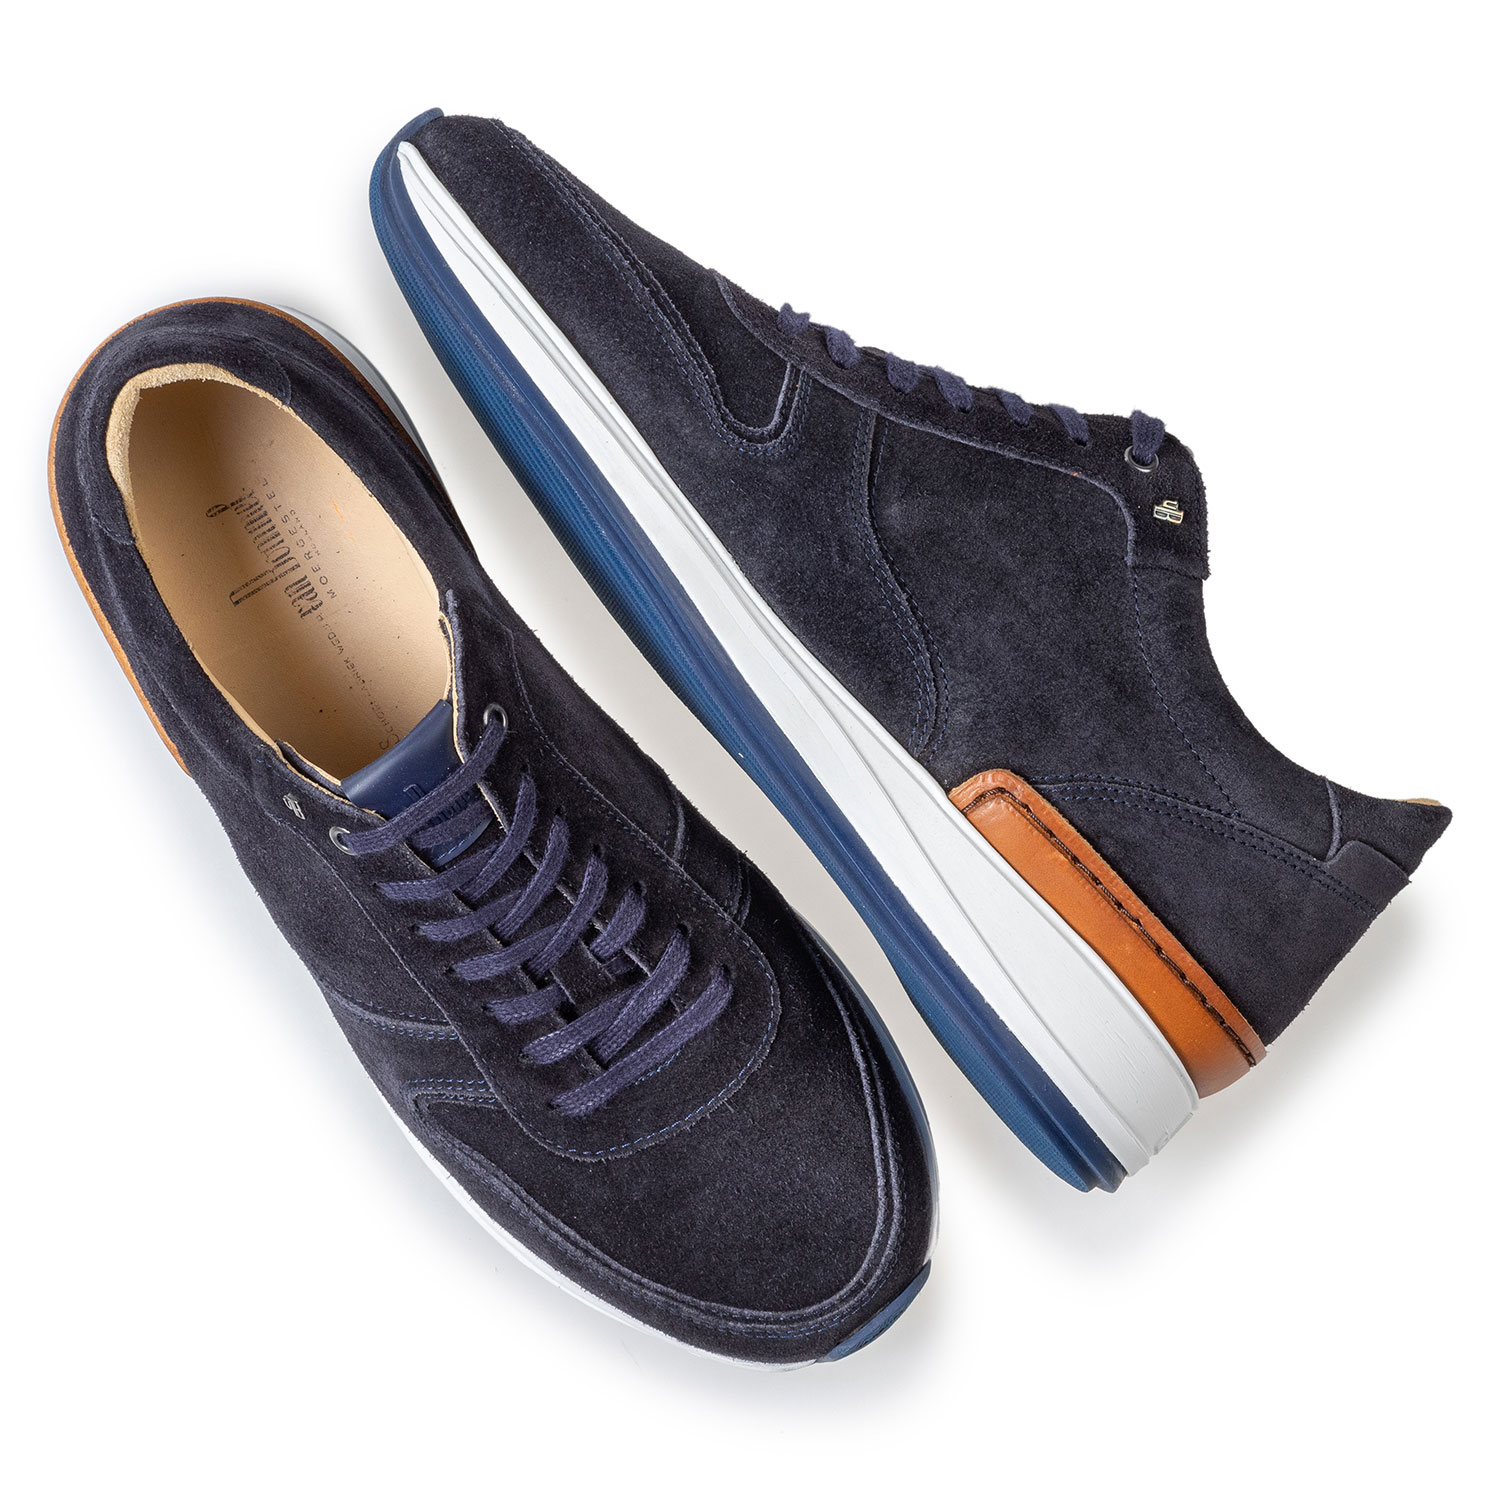 16334/04 - Sneaker dark blue suede leather